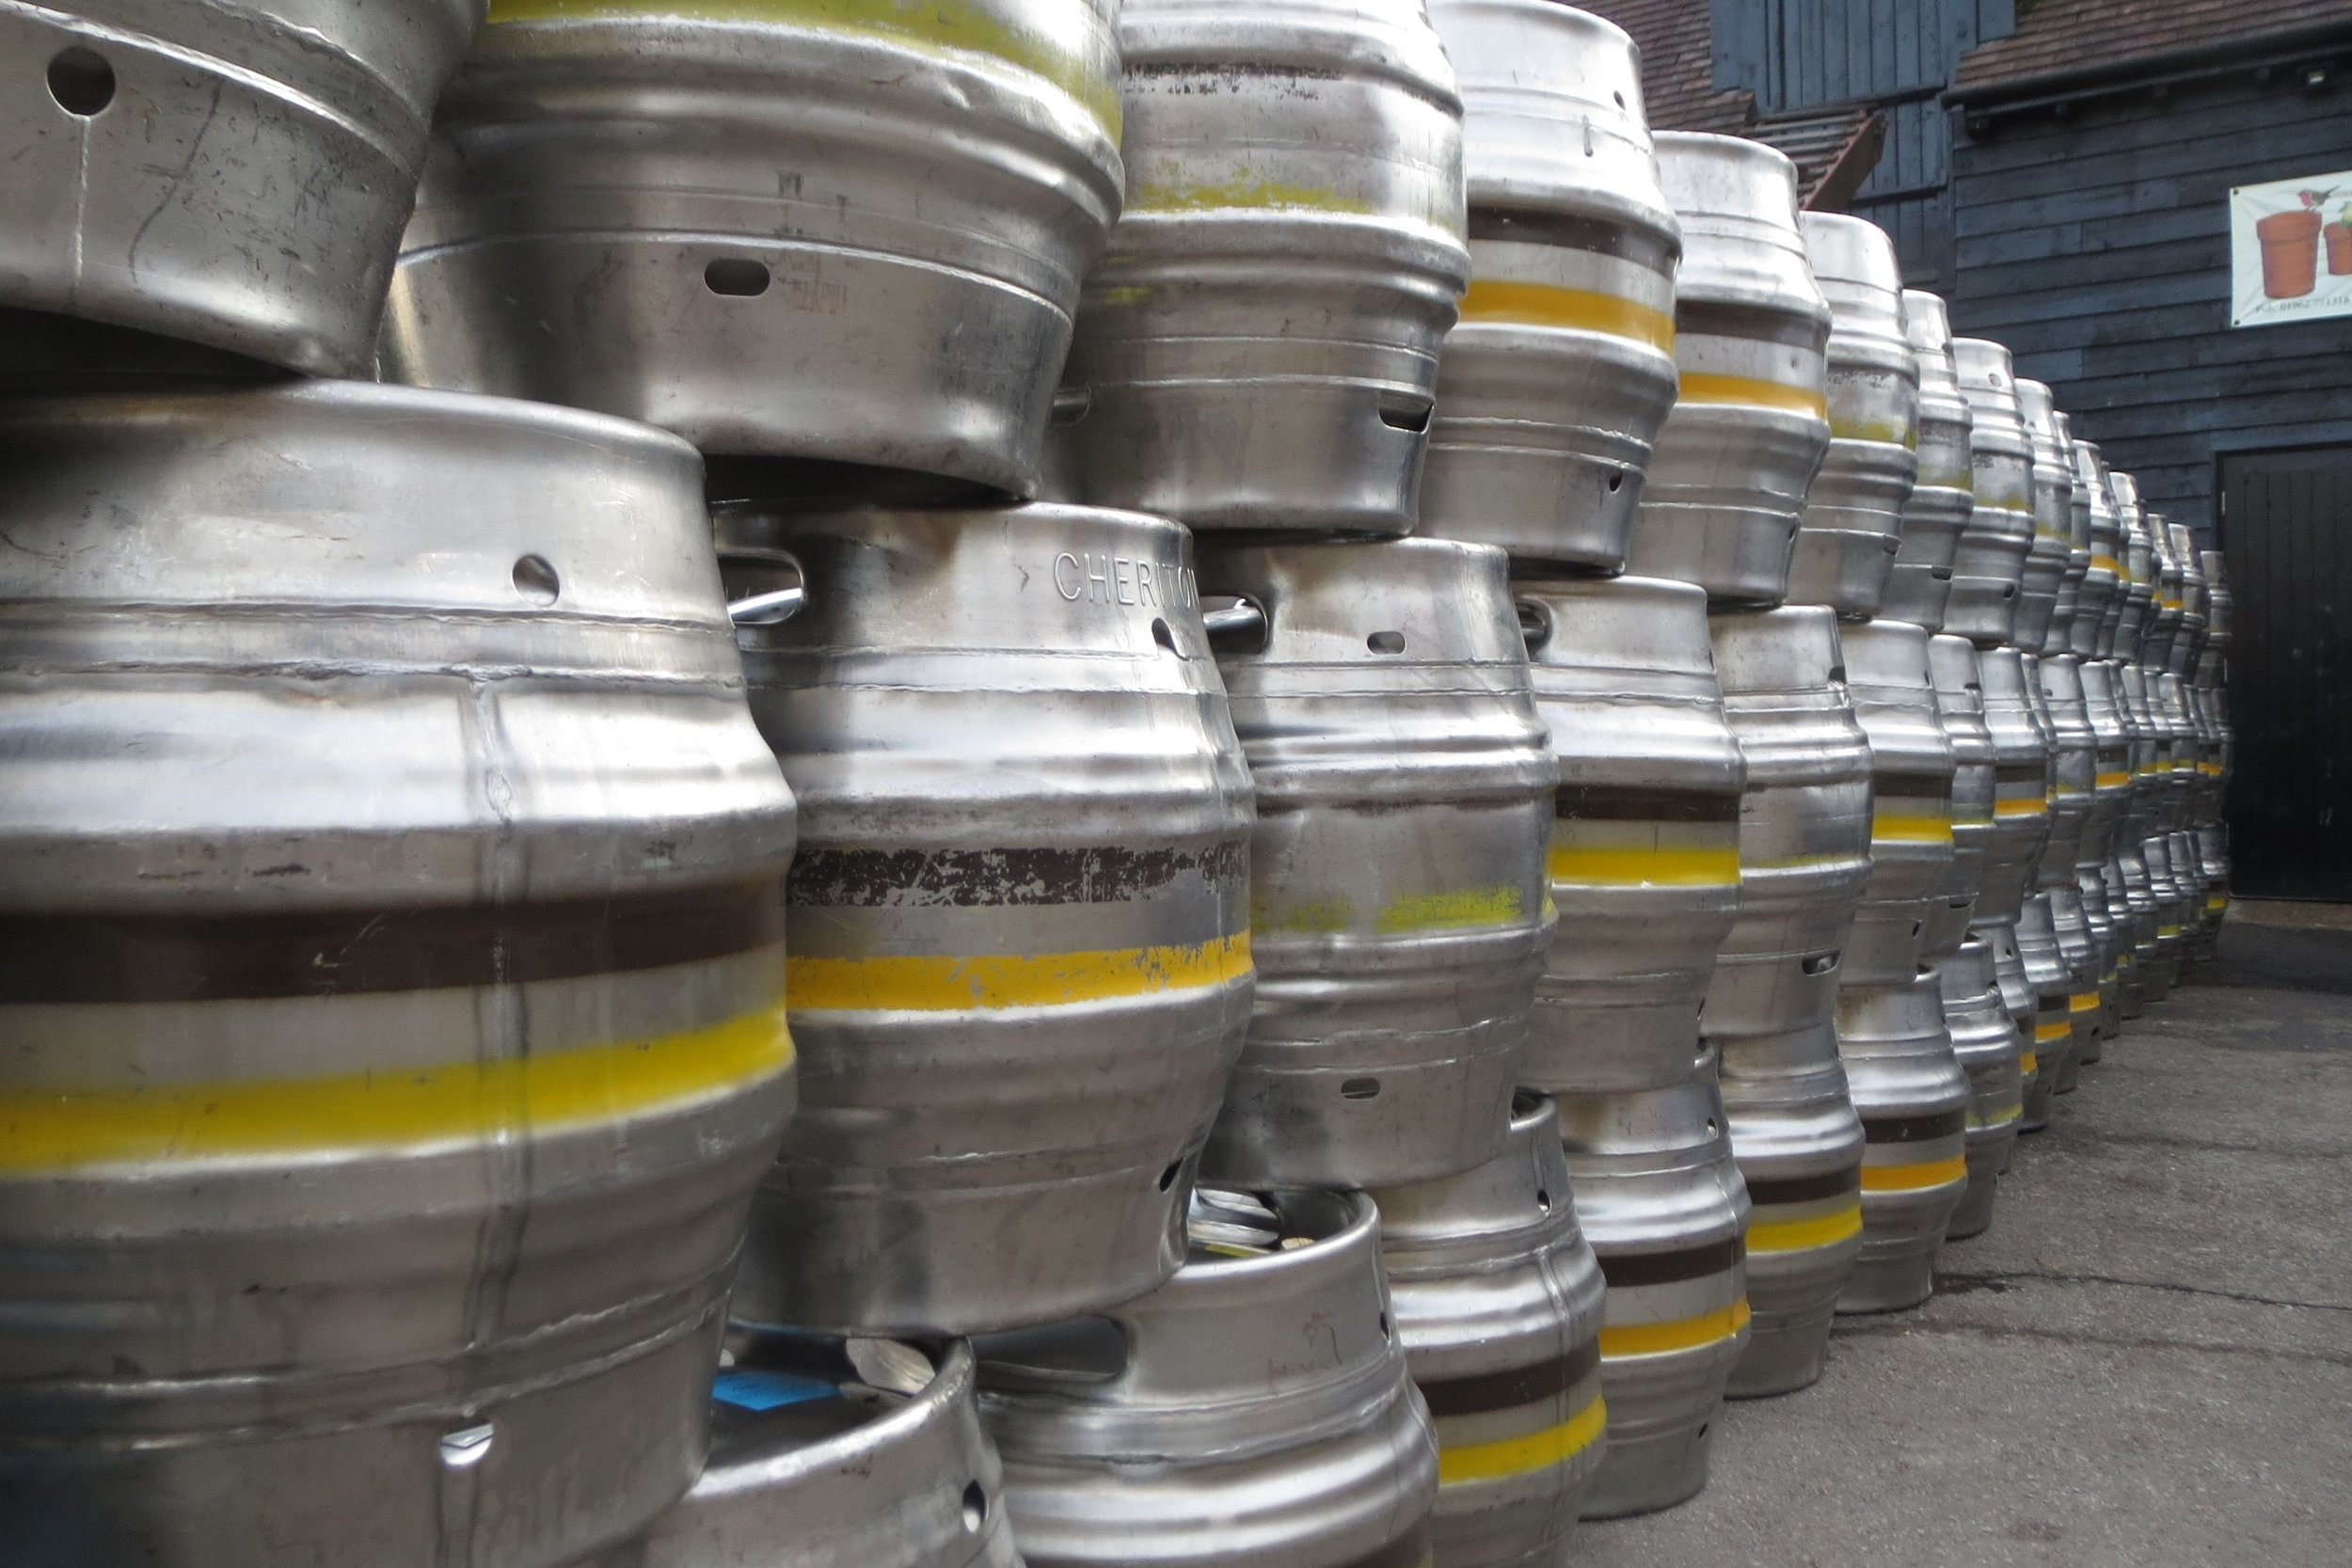 The Flower Pots Cheriton & Are you our next Assistant Brewer? \u2014 The Flower Pots Cheriton